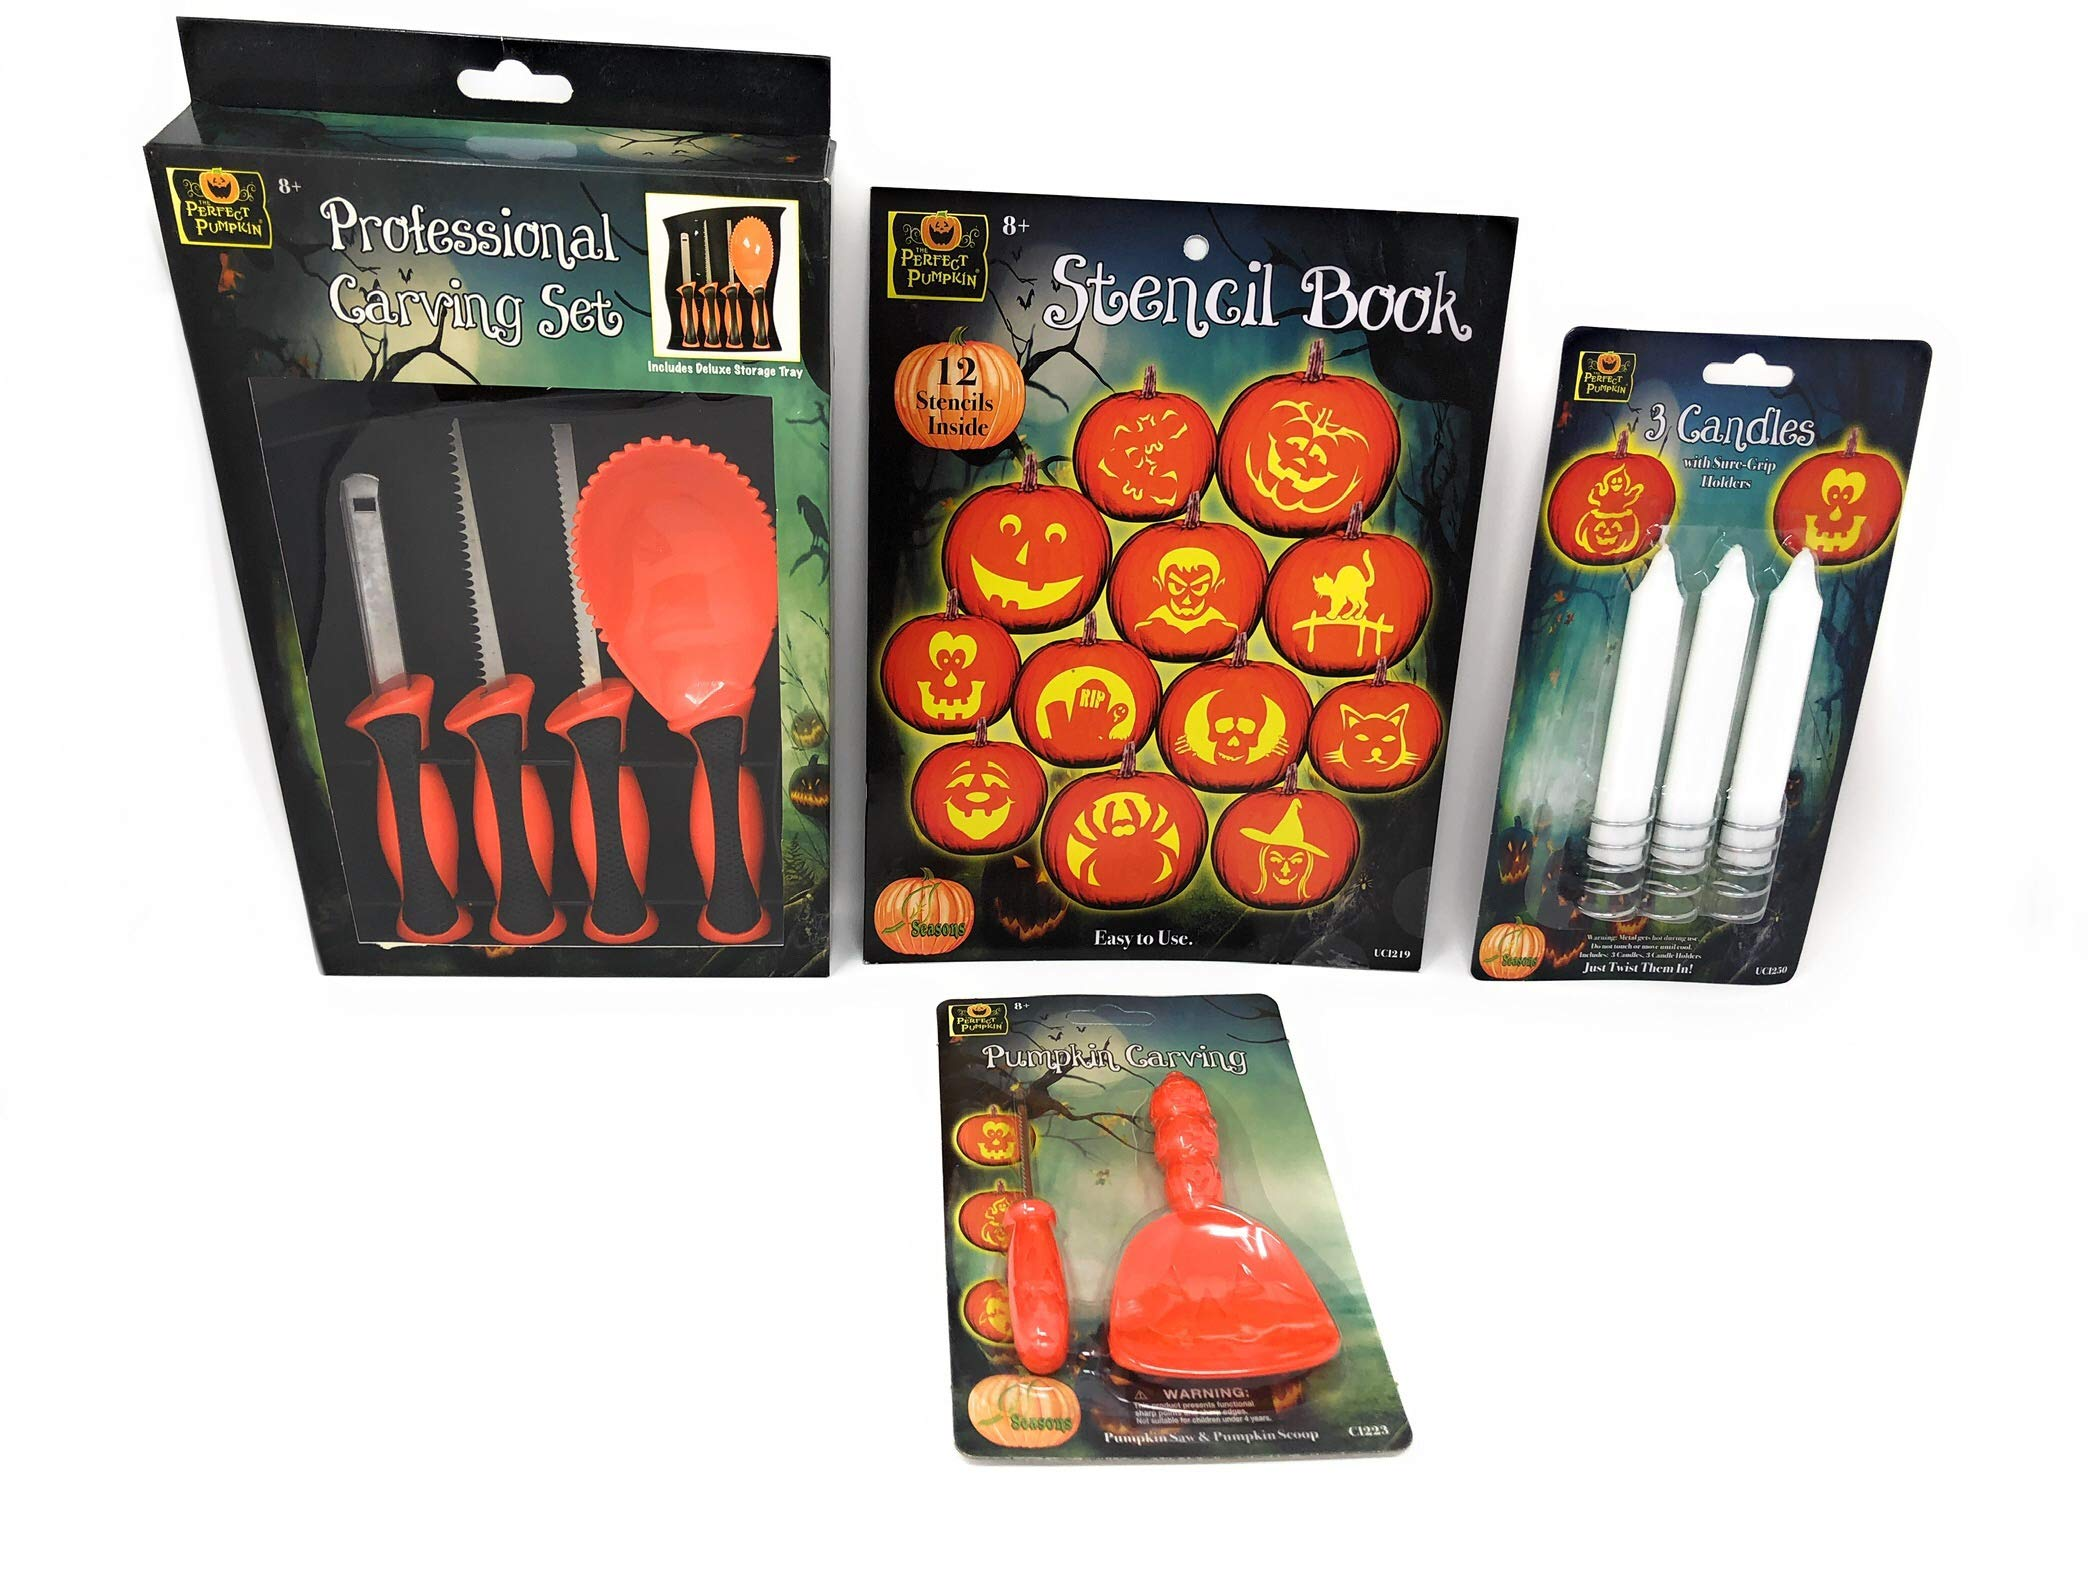 Mega Pumpkin Carving Kit-22 Pieces Includes 12 Stencils Book Professional Carving Set Sure Grip Candles and Carving Set for Children by Generic